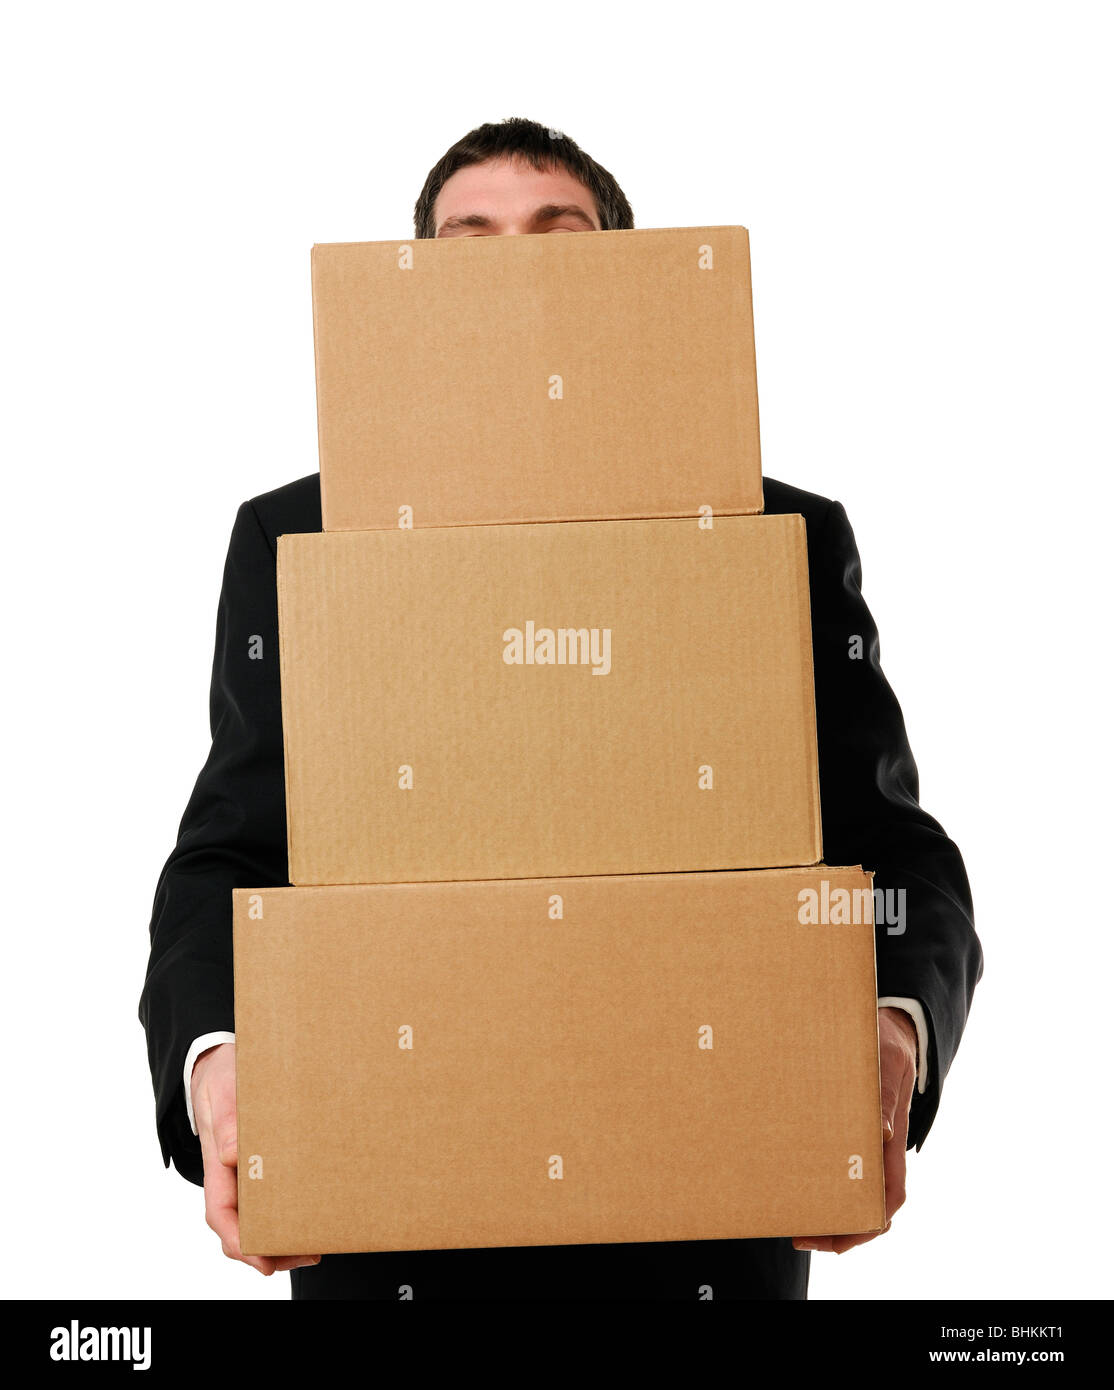 Businessman Overloaded with Boxes - Stock Image